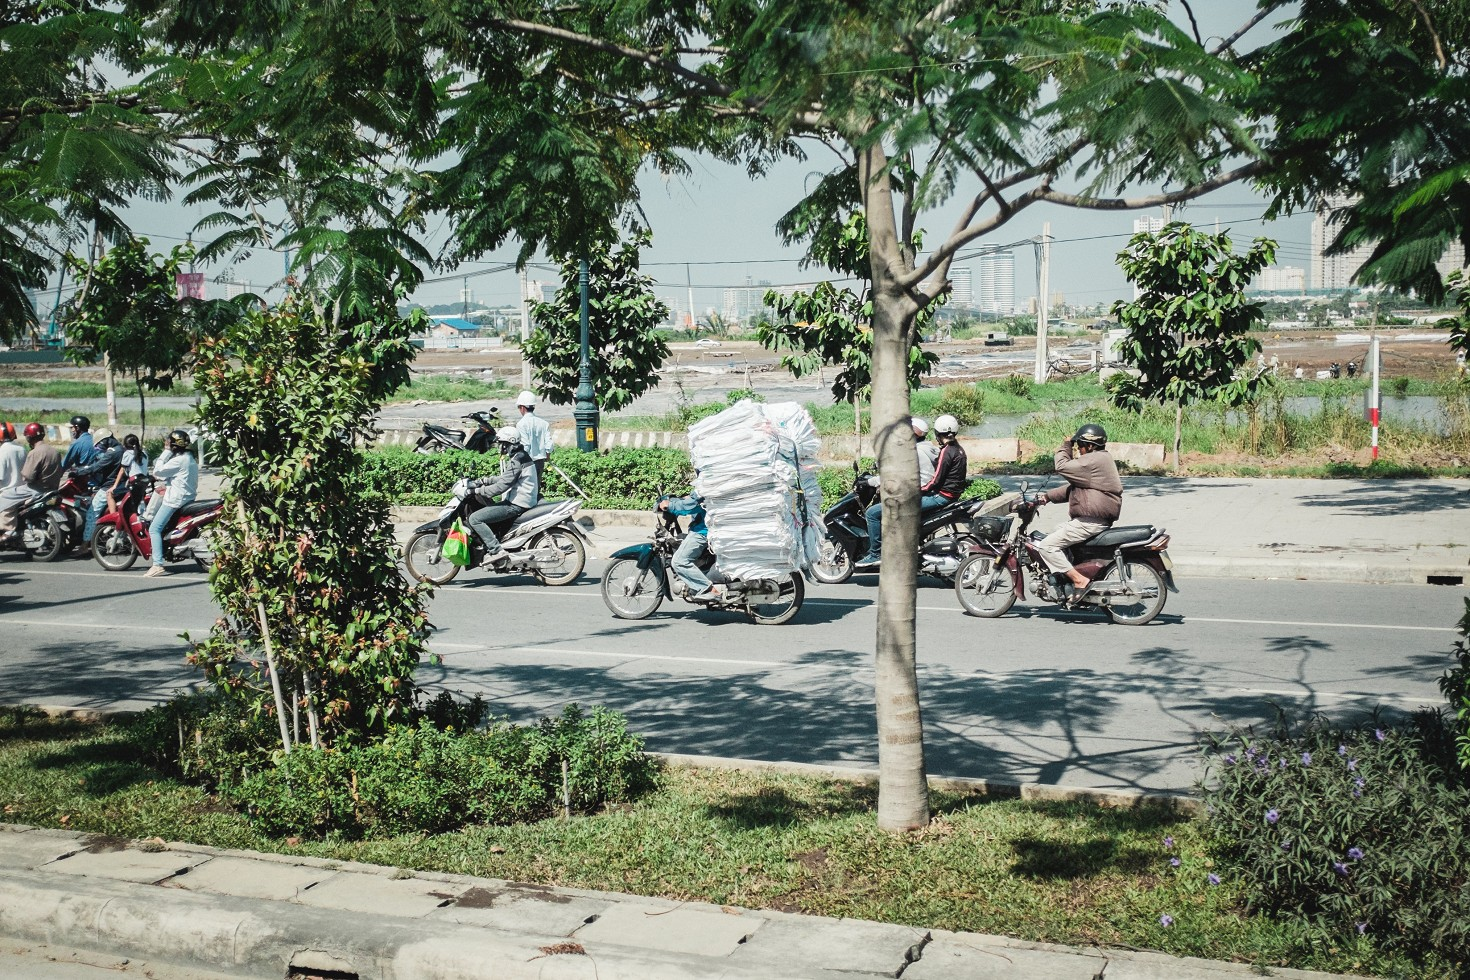 Vietnam-Ho-Chi-Minh-City-Saigon-Reportage-Scooter-Traffic-Verkehr (1 von 16)